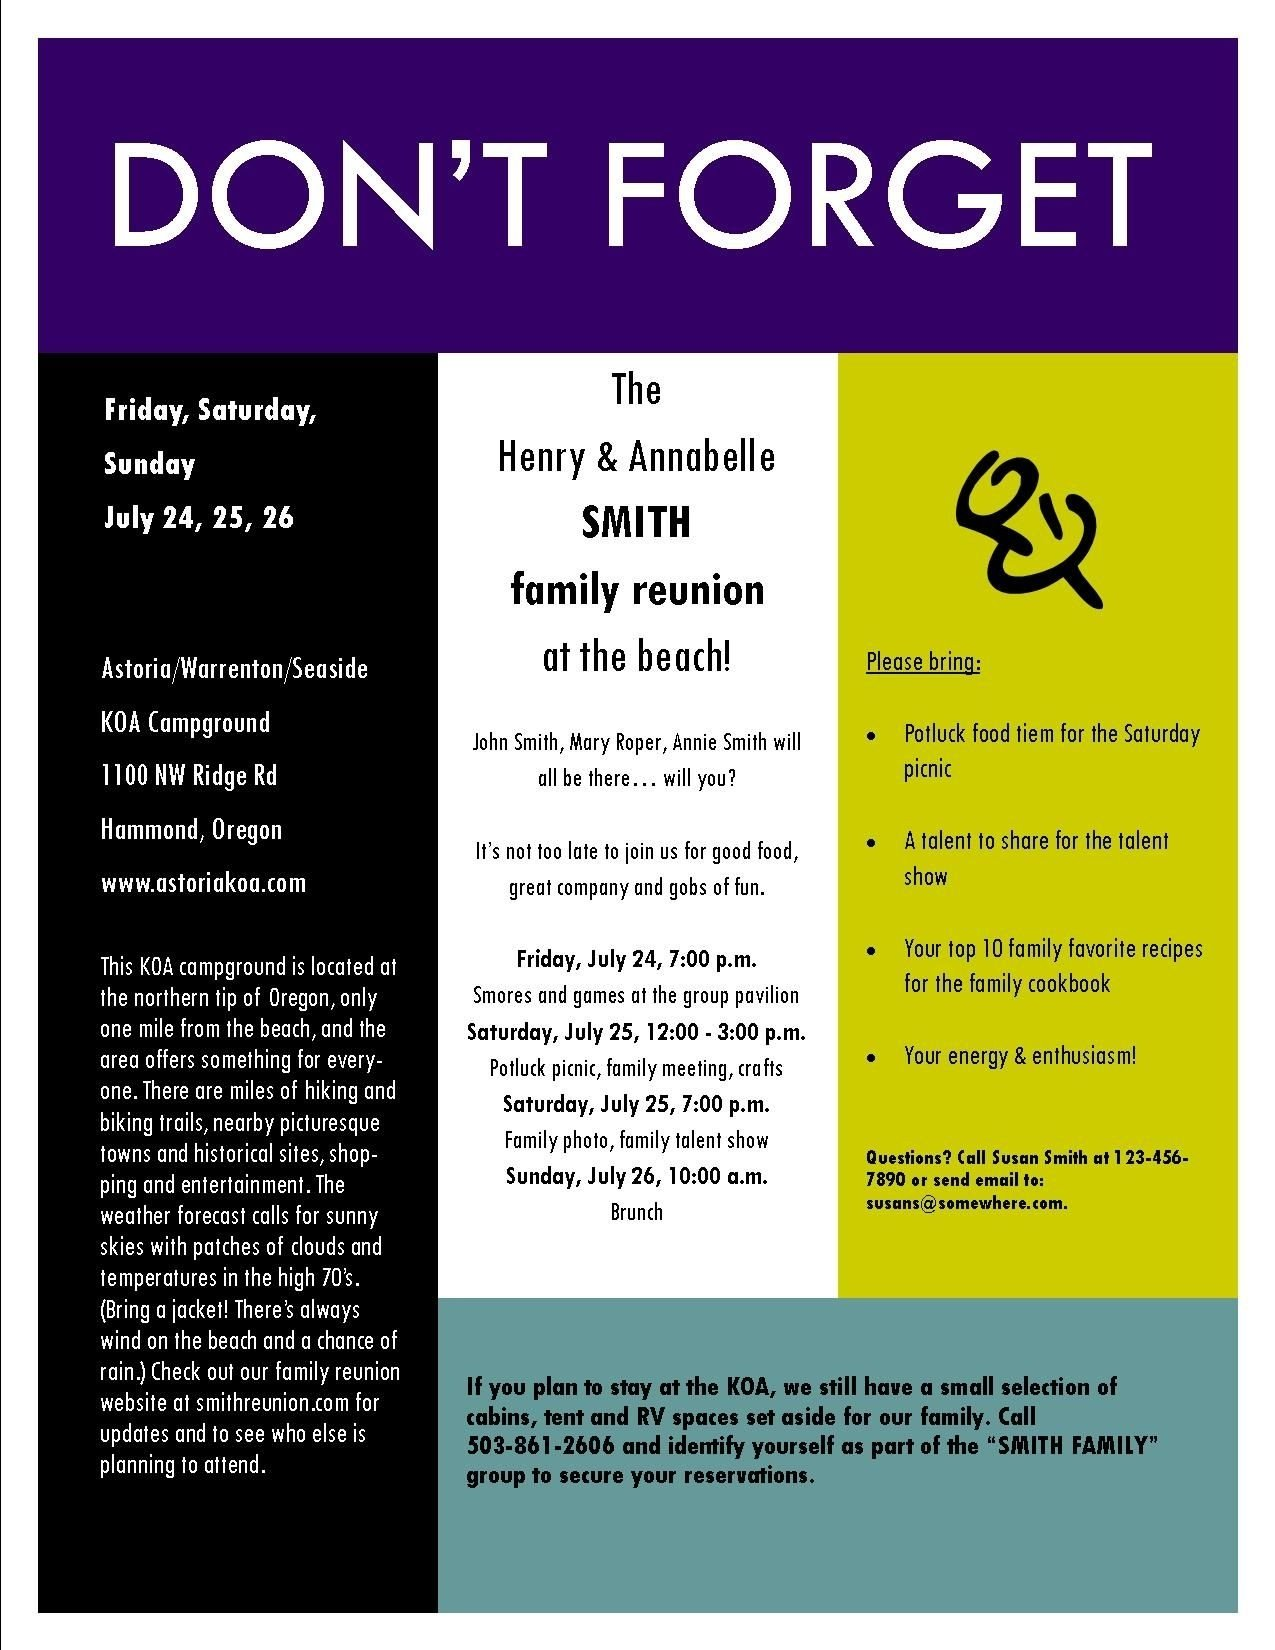 sample family reunion invitation flyer | ideas for family reunions